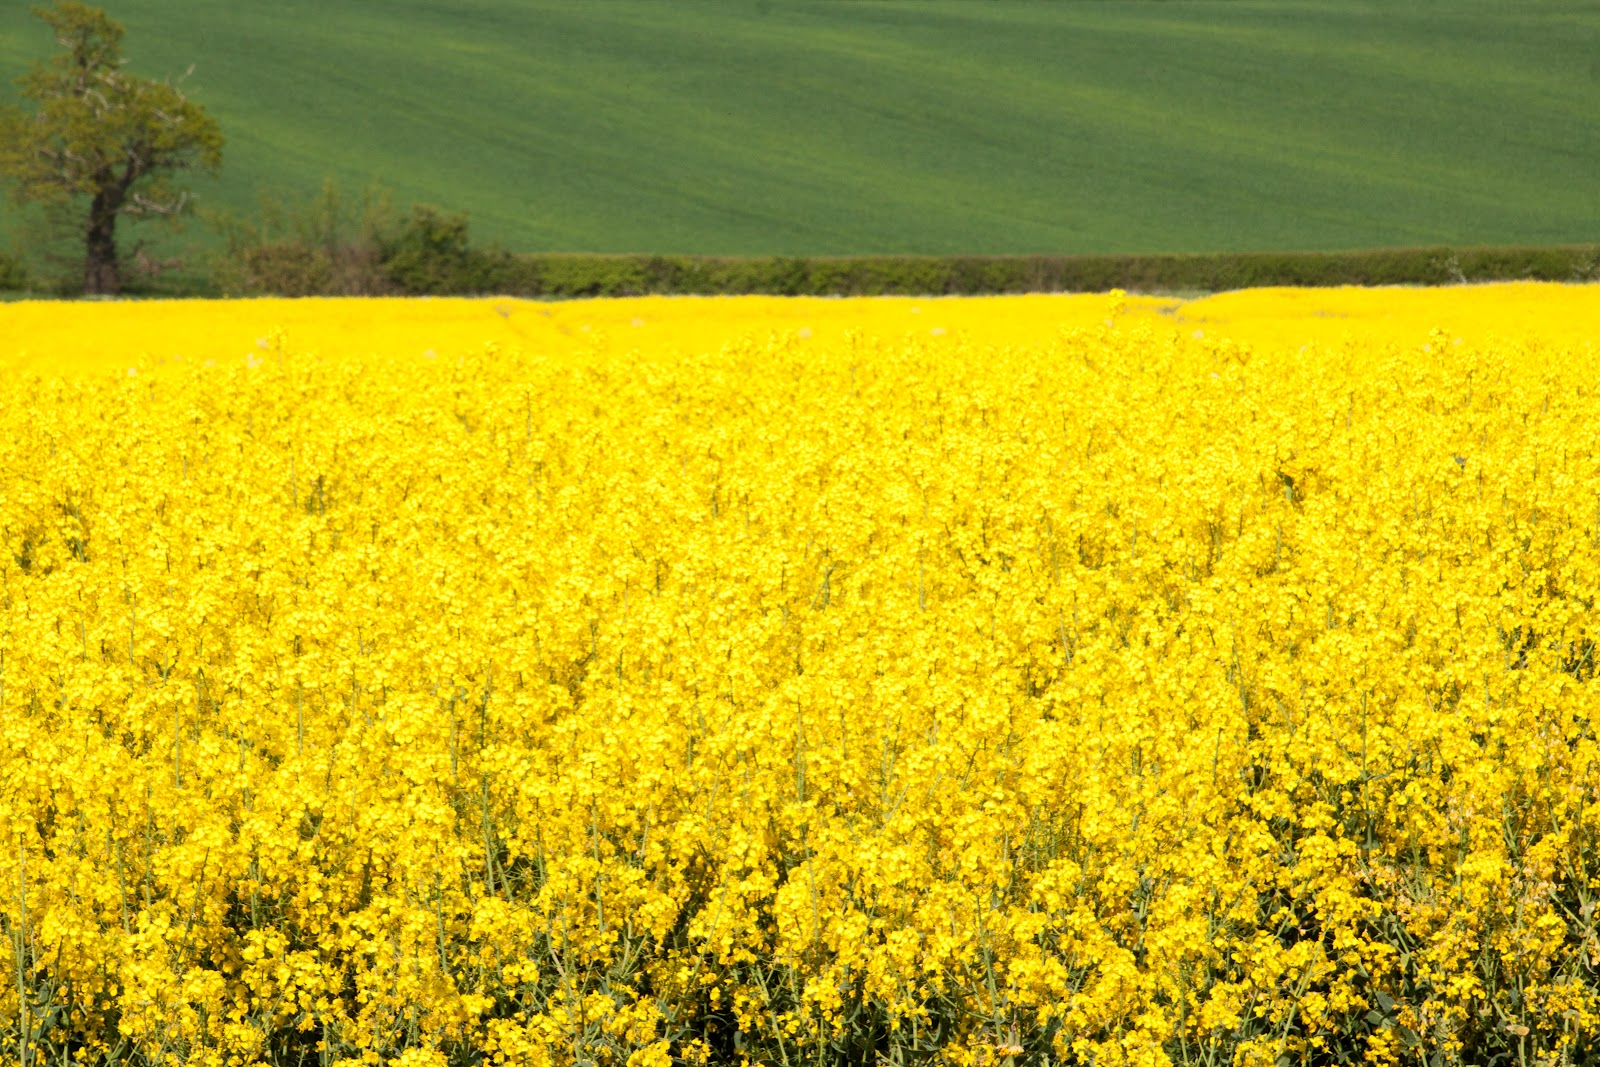 Peach And Thistle Fields Of Yellow Rapeseed